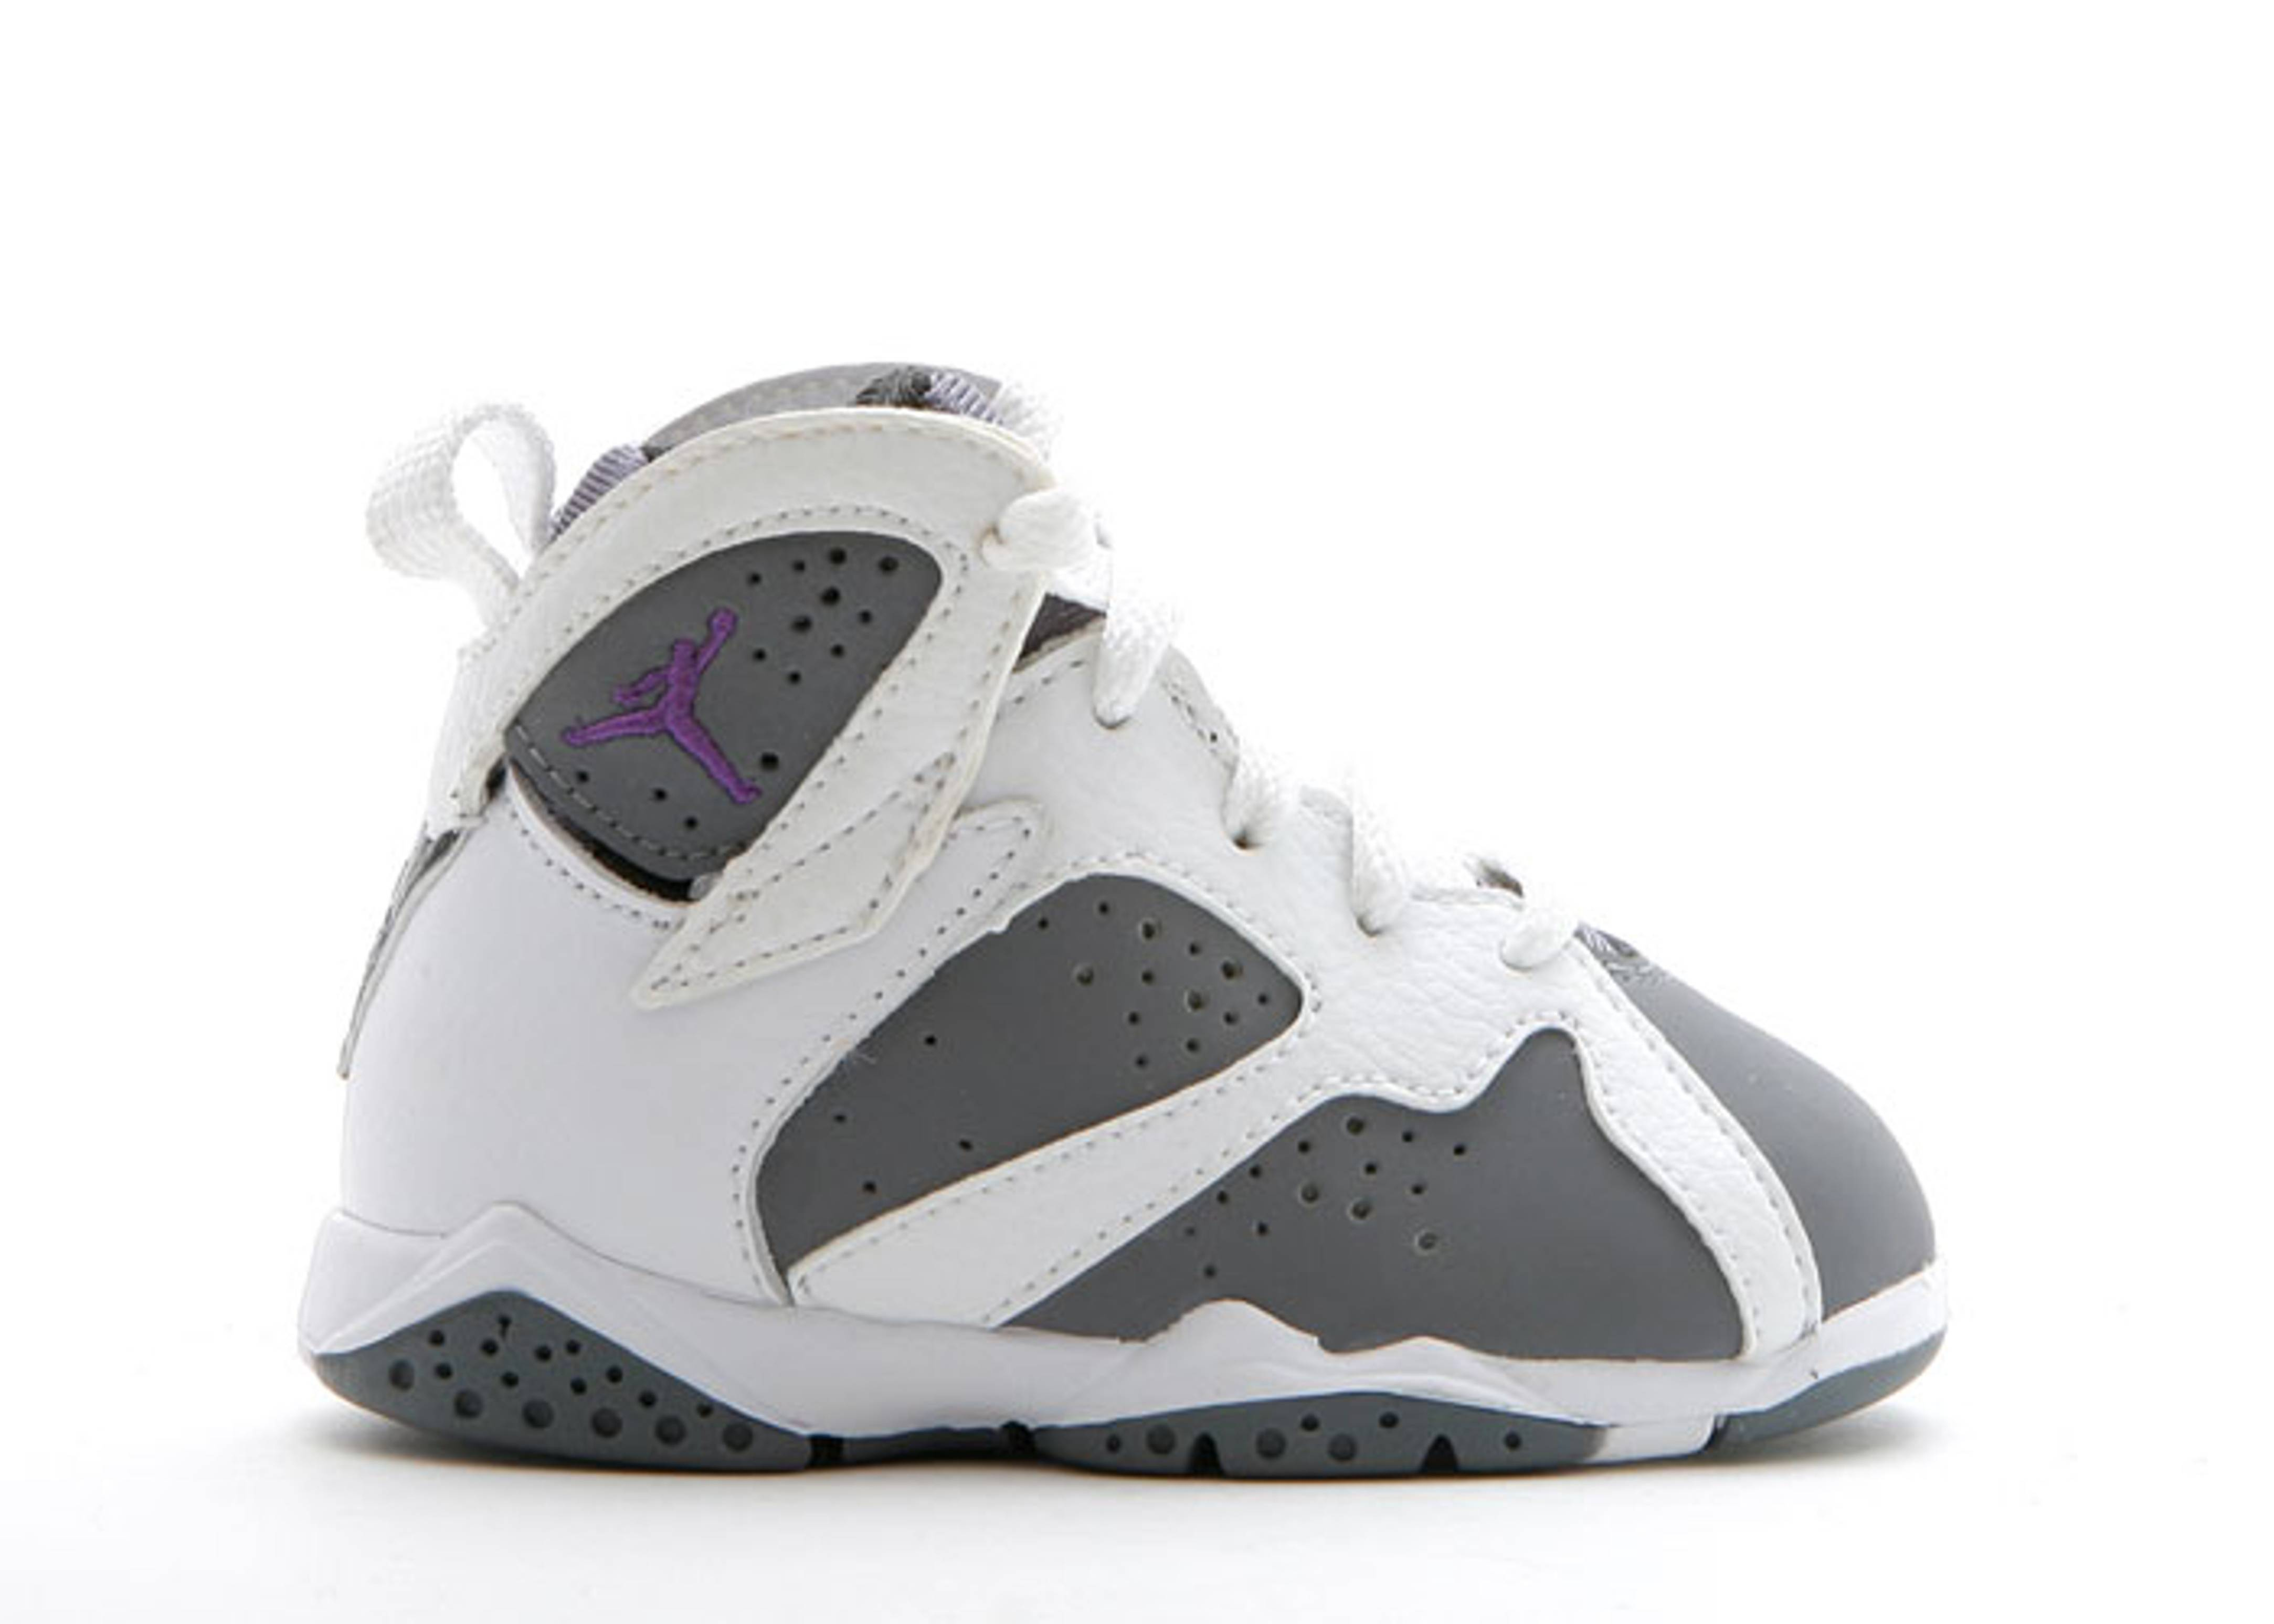 8a75d4bda76d Air Jordan 7 Retro (td) - Air Jordan - 304772 151 - white varsity ...